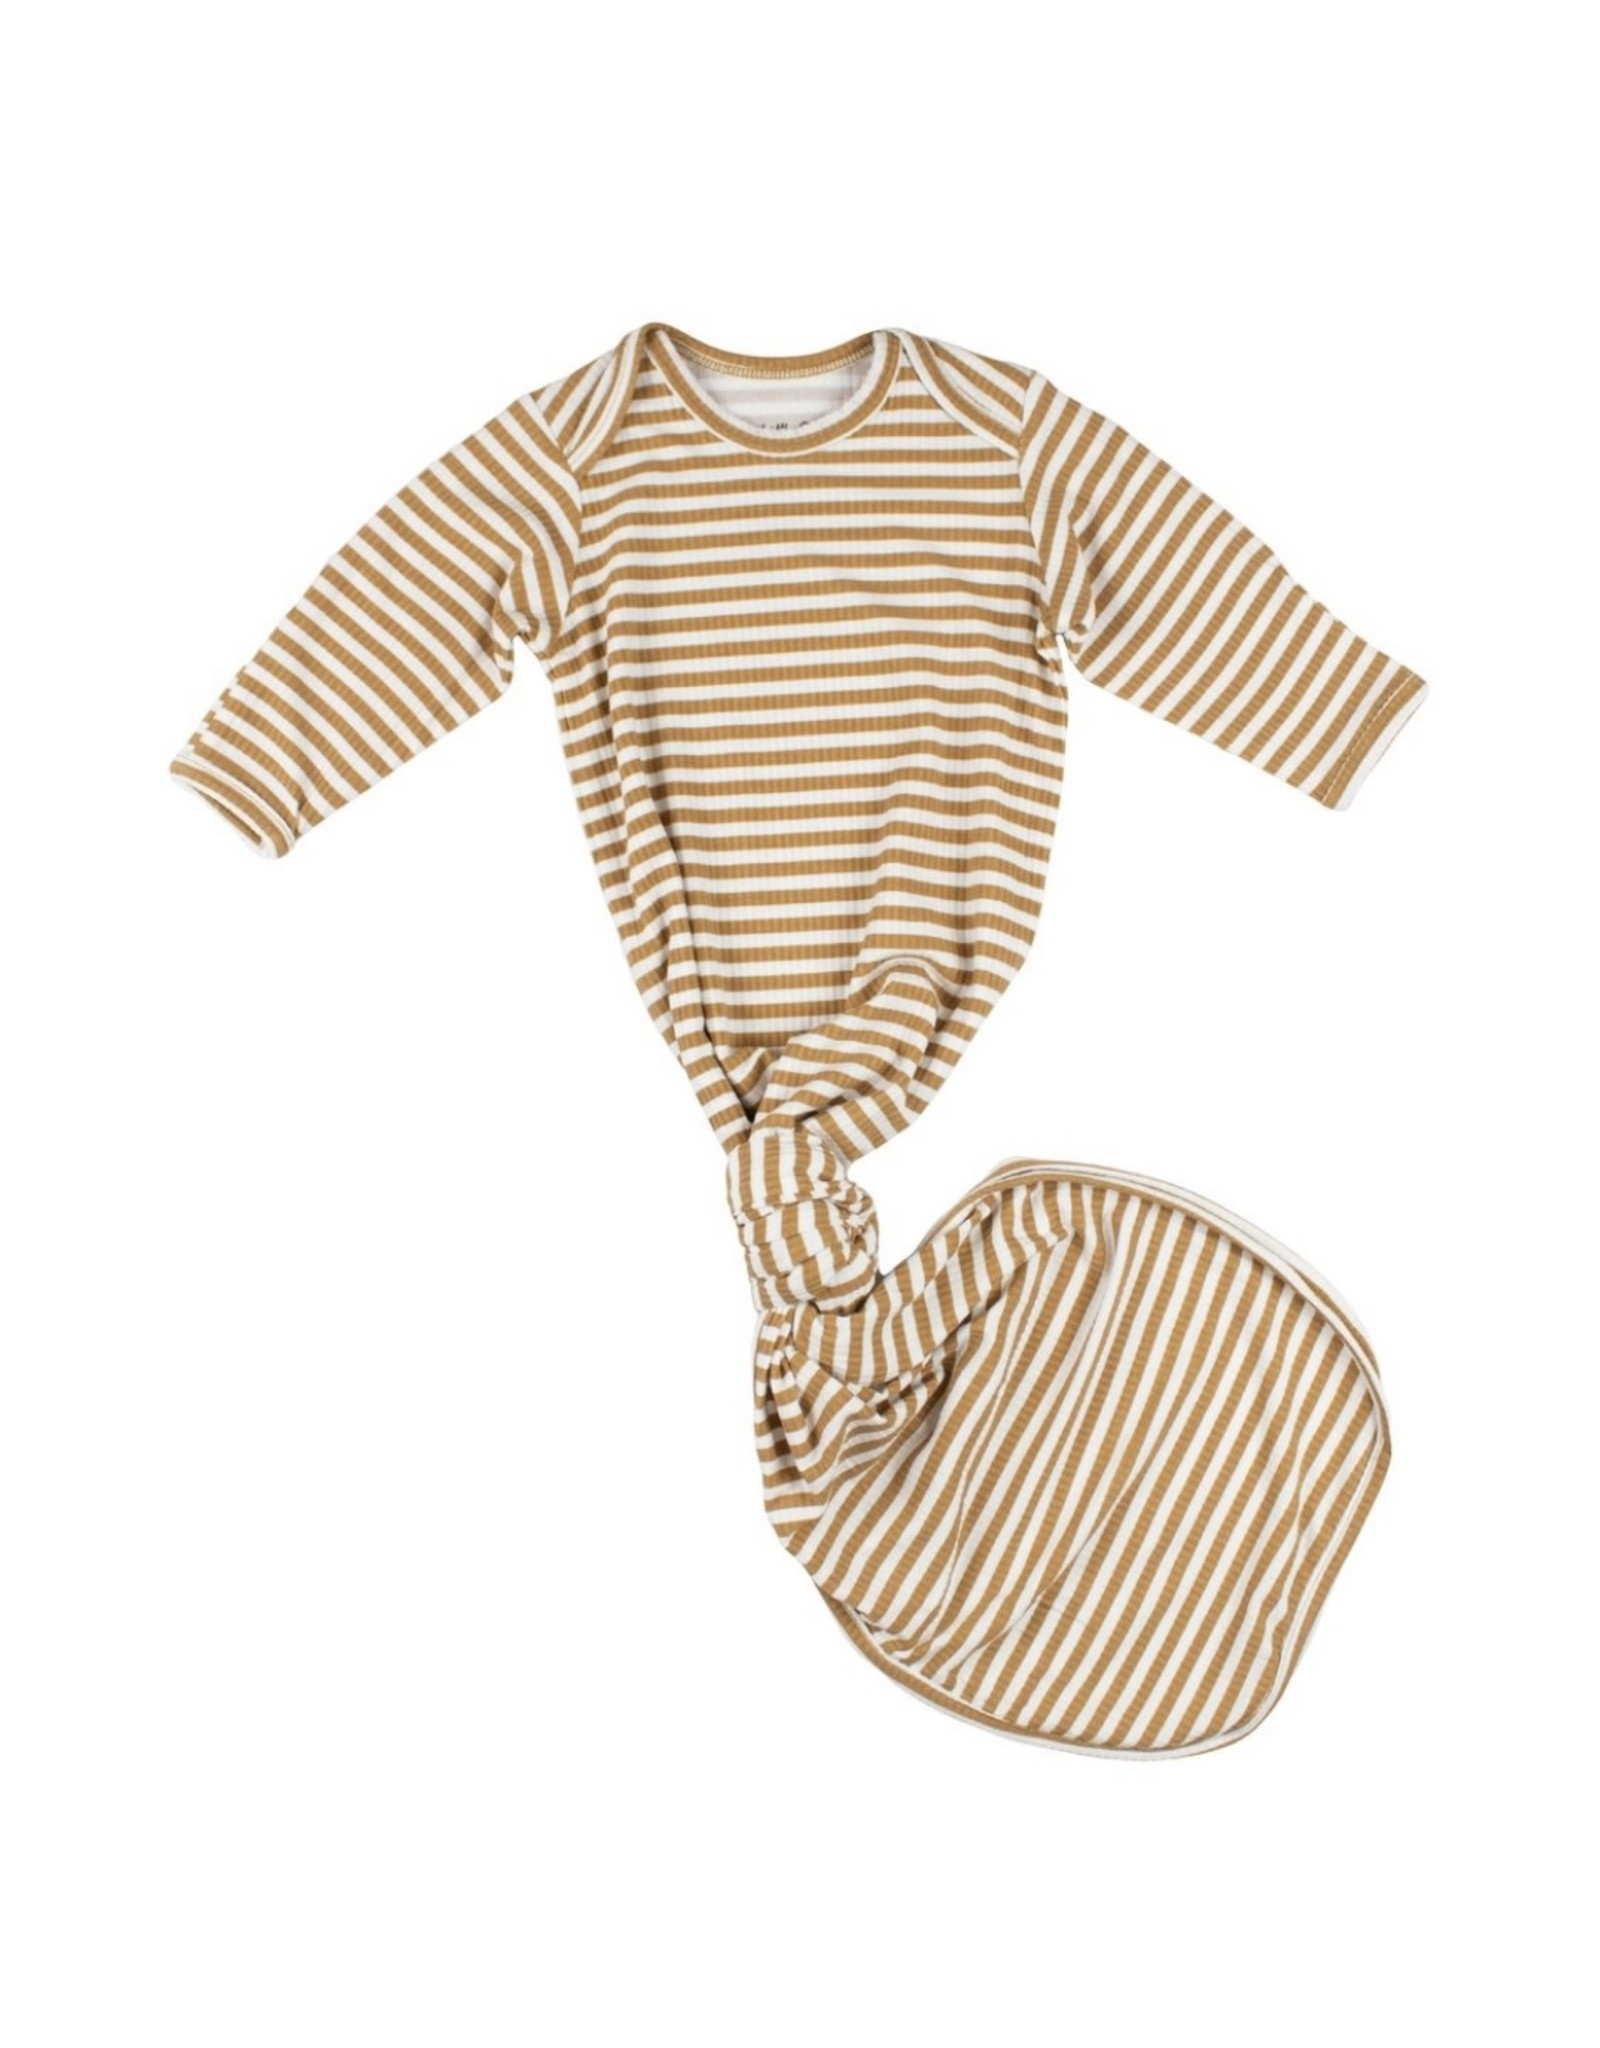 Brave Little Ones Brave Little Ones- Camel Striped Ribbed Knotted Gown 0-3M